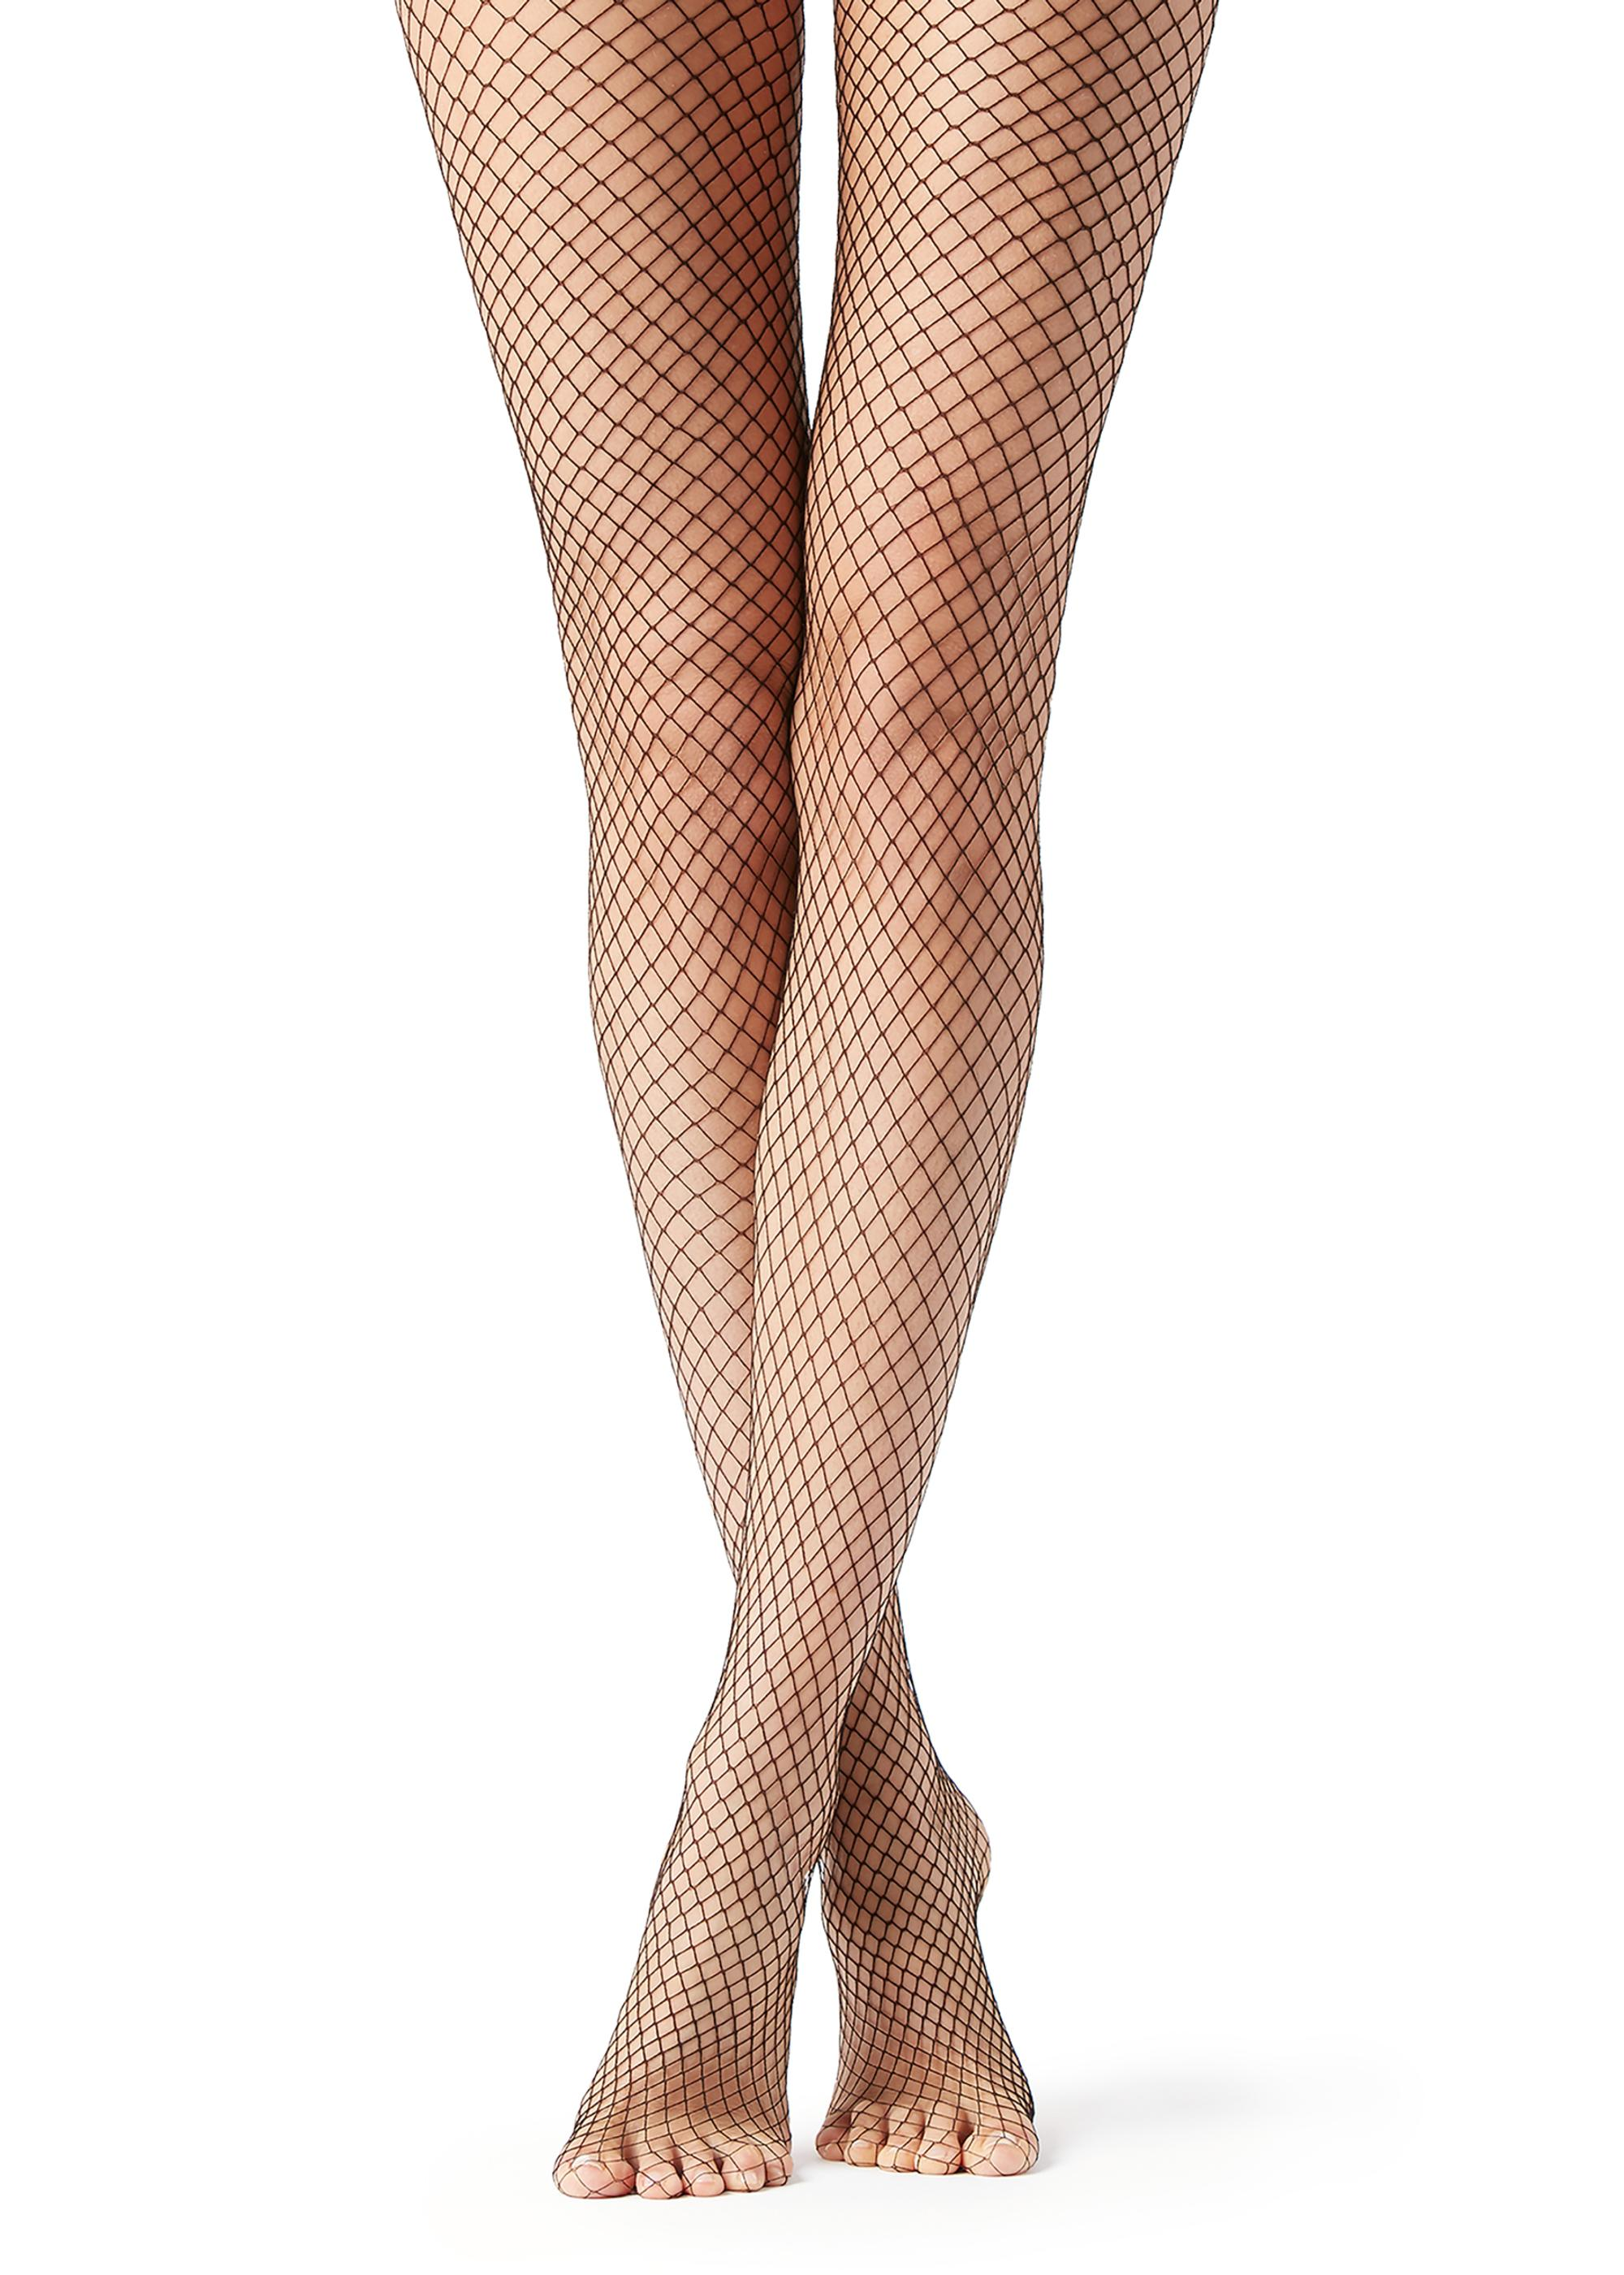 e0530e5e4 Fishnet Tights - Calzedonia